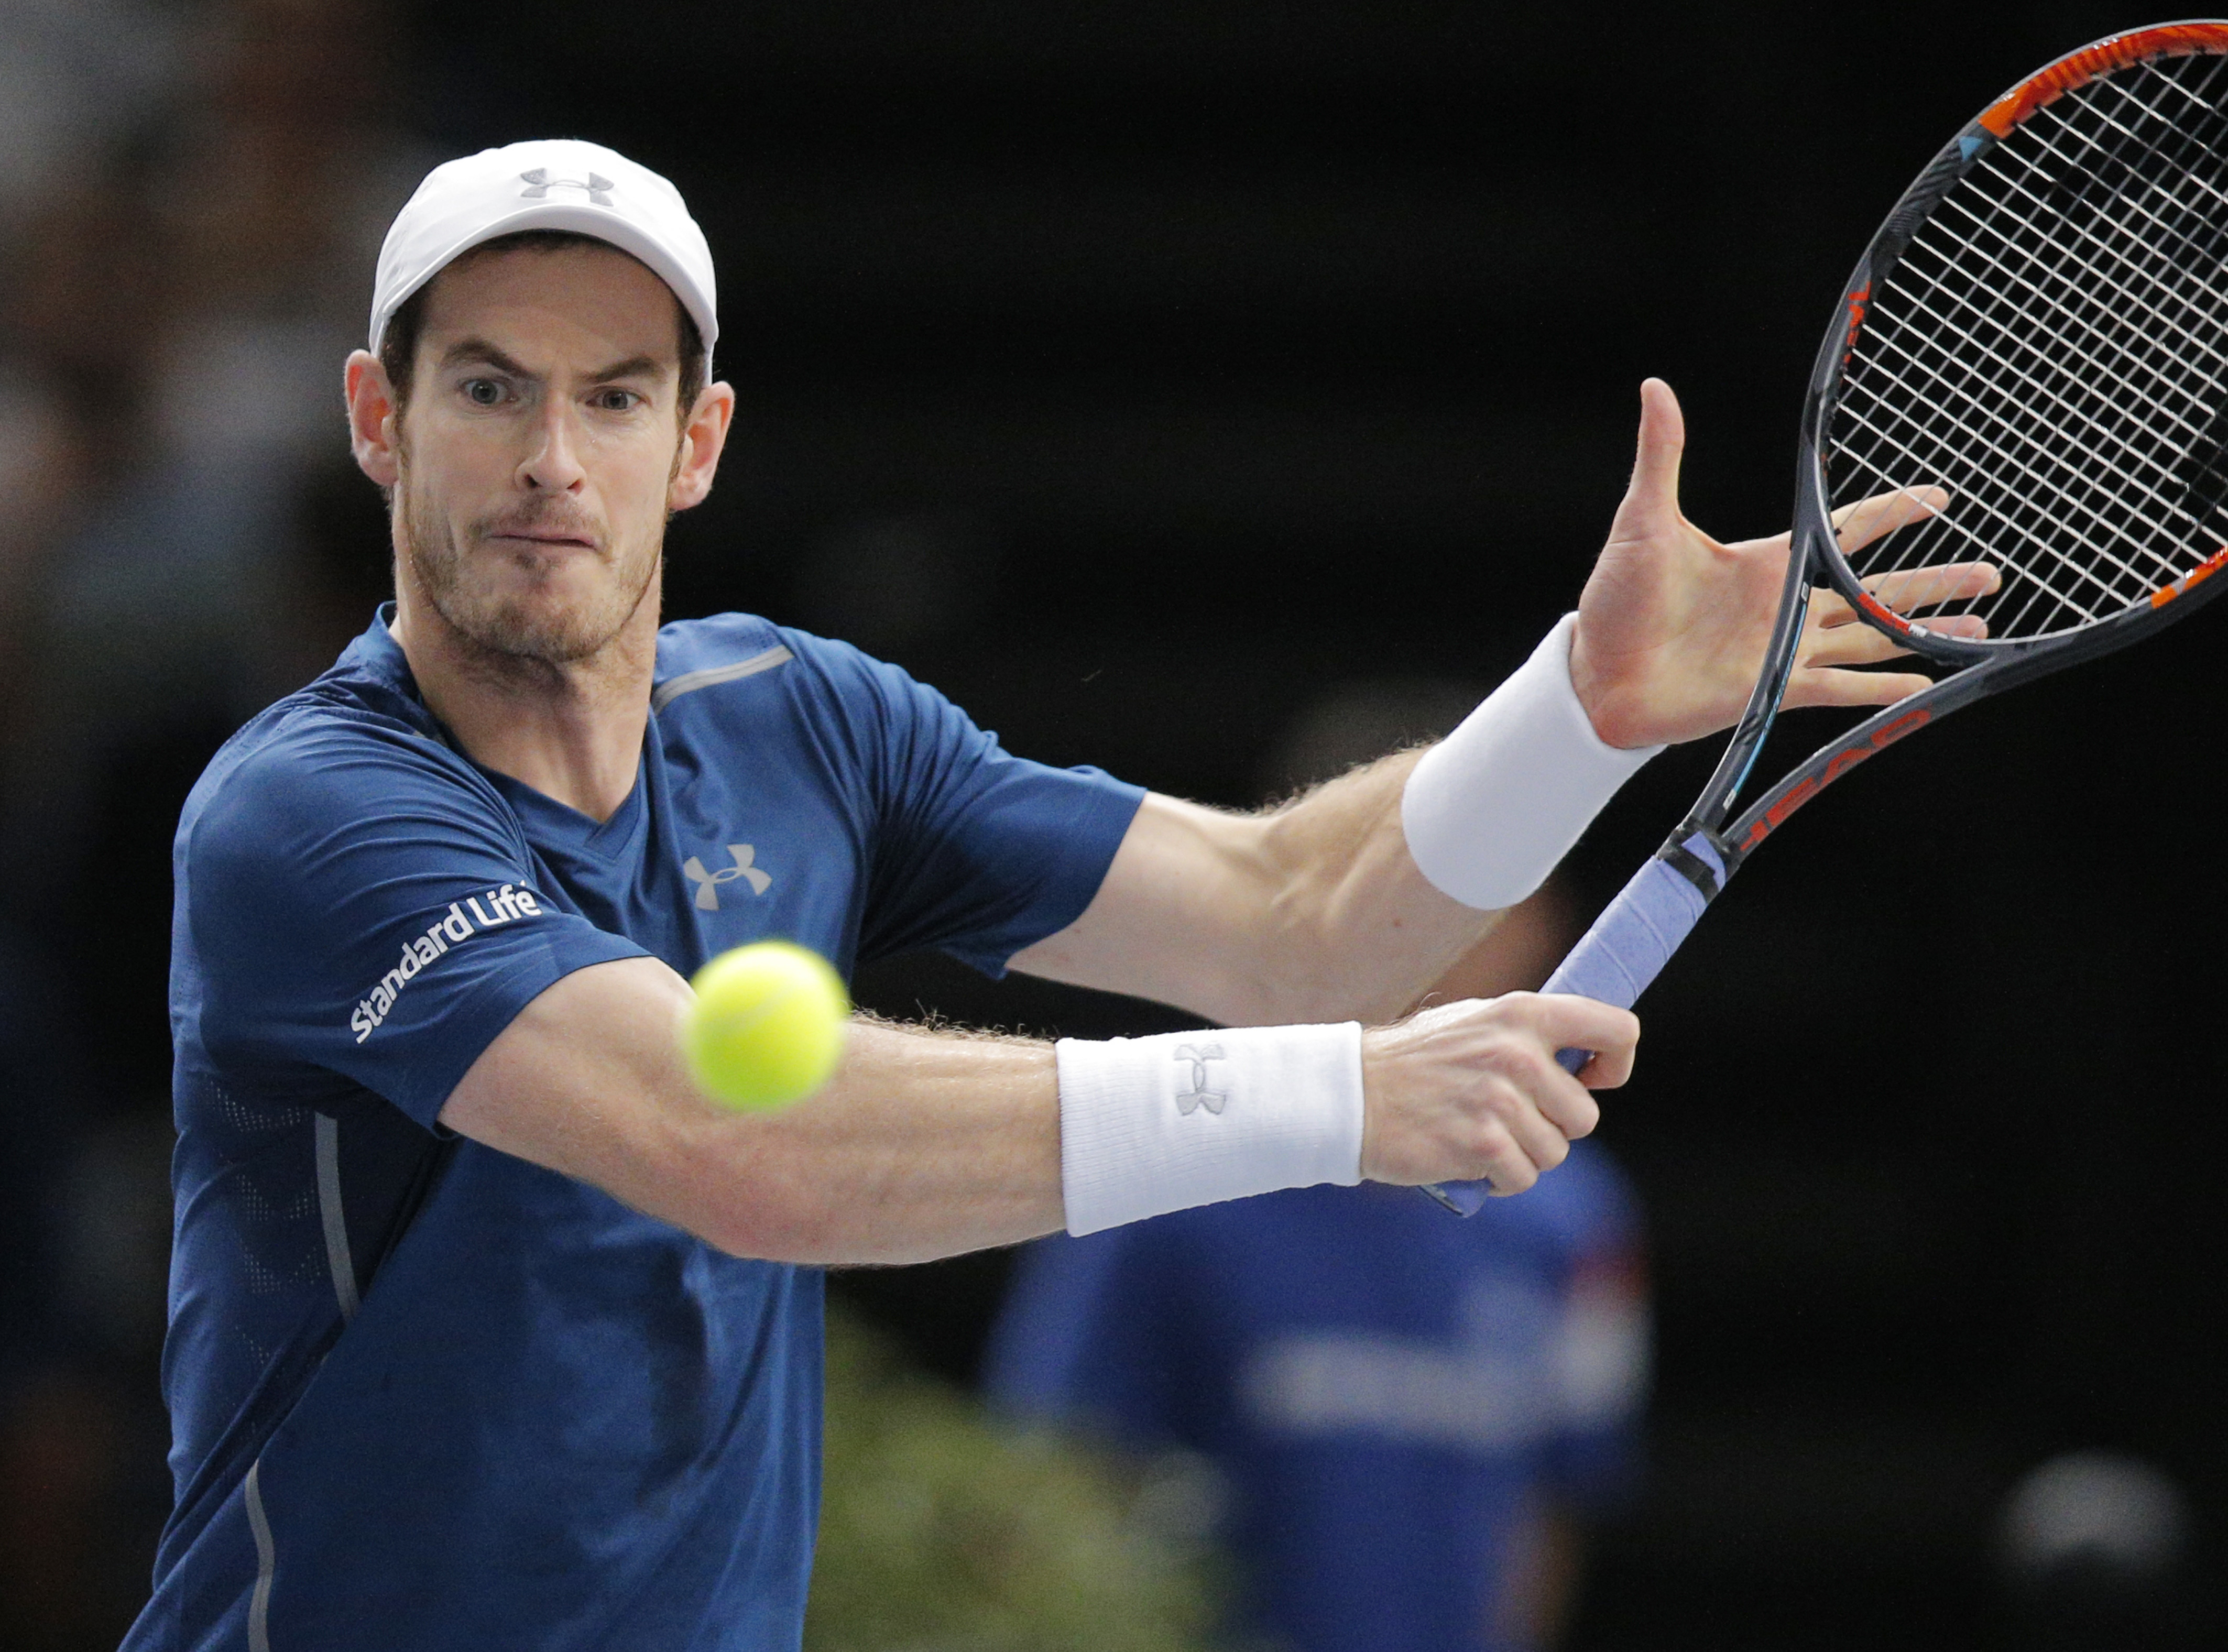 Andy Murray of Britain returns the ball to John Isner of the United States during the final of the Paris Masters tennis tournament at the Bercy Arena in Paris, Sunday, Nov. 6, 2016. (AP Photo/Michel Euler)